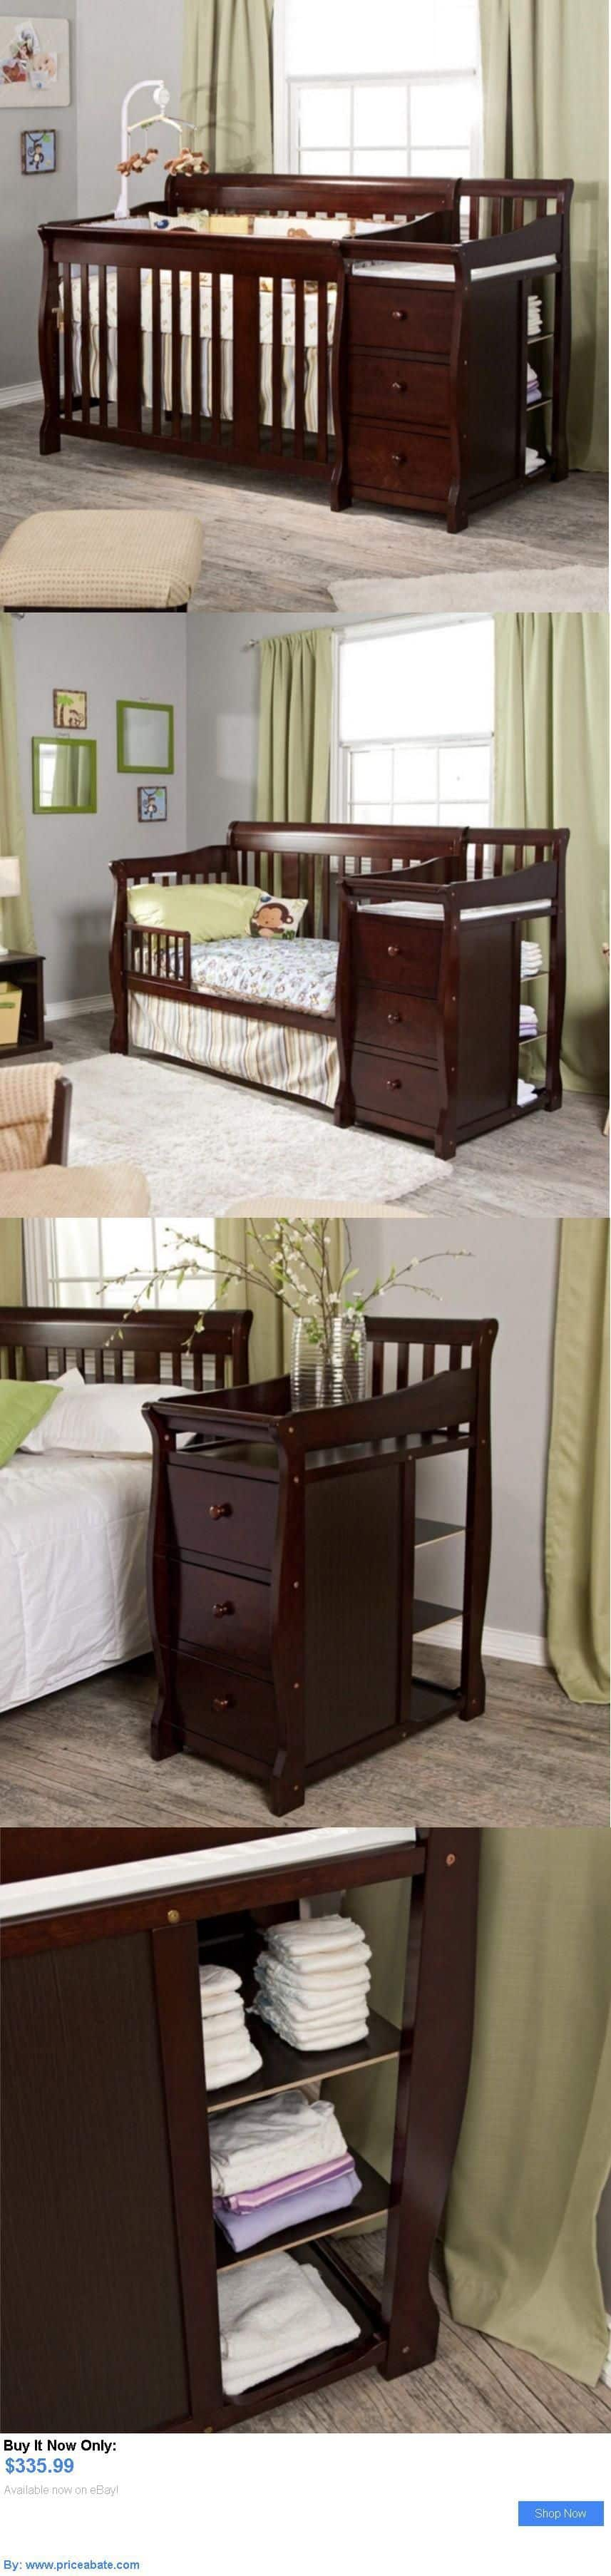 Changing Table Ideas & Inspiration 123